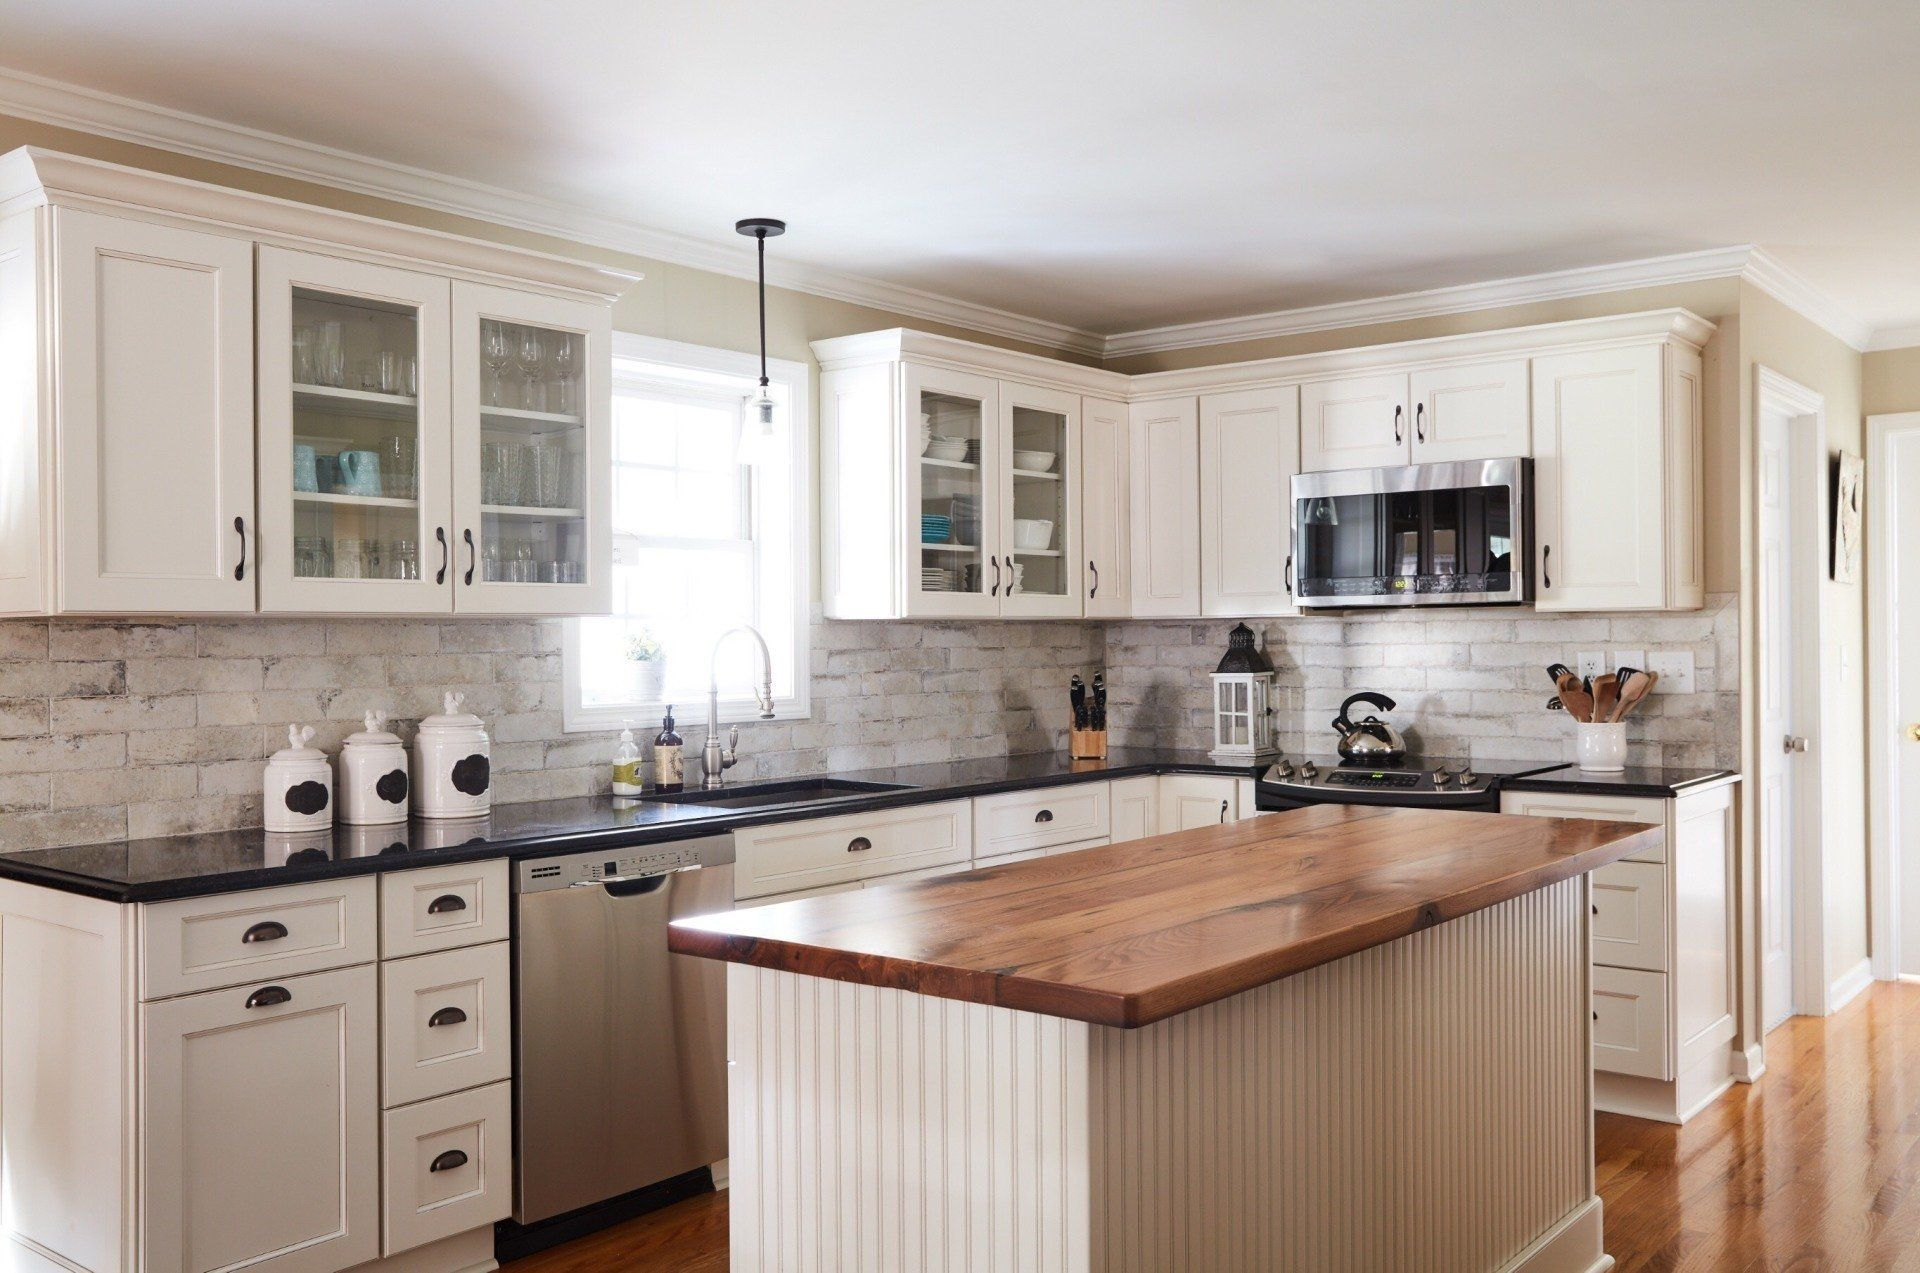 Cabinet Sales | Custom Cabinets | Lutherville Timonium, MD